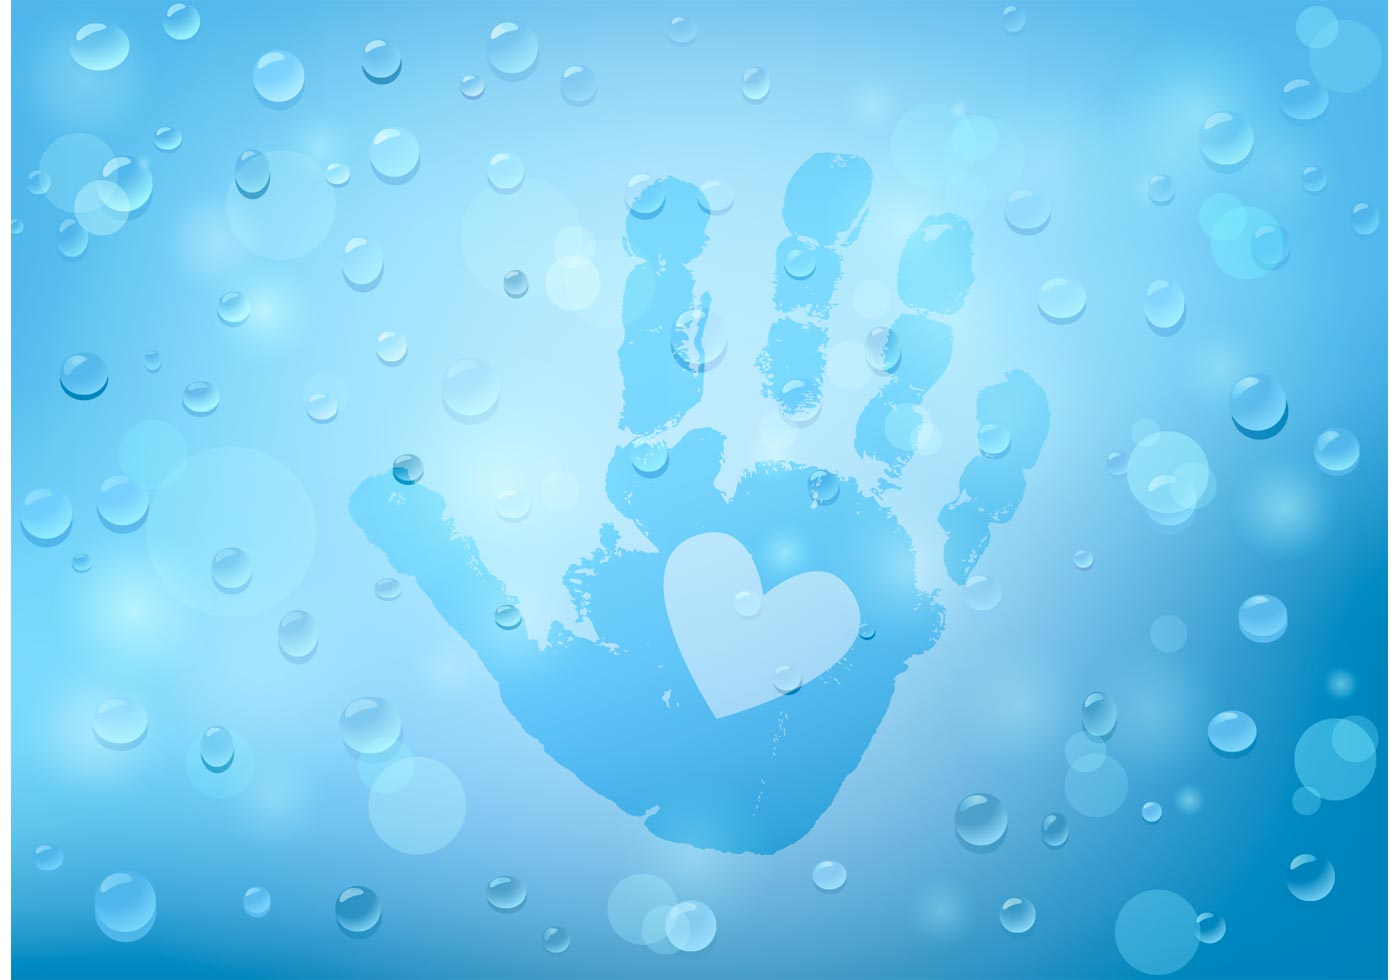 Free Vector Child Handprint On Glass And Raindrops